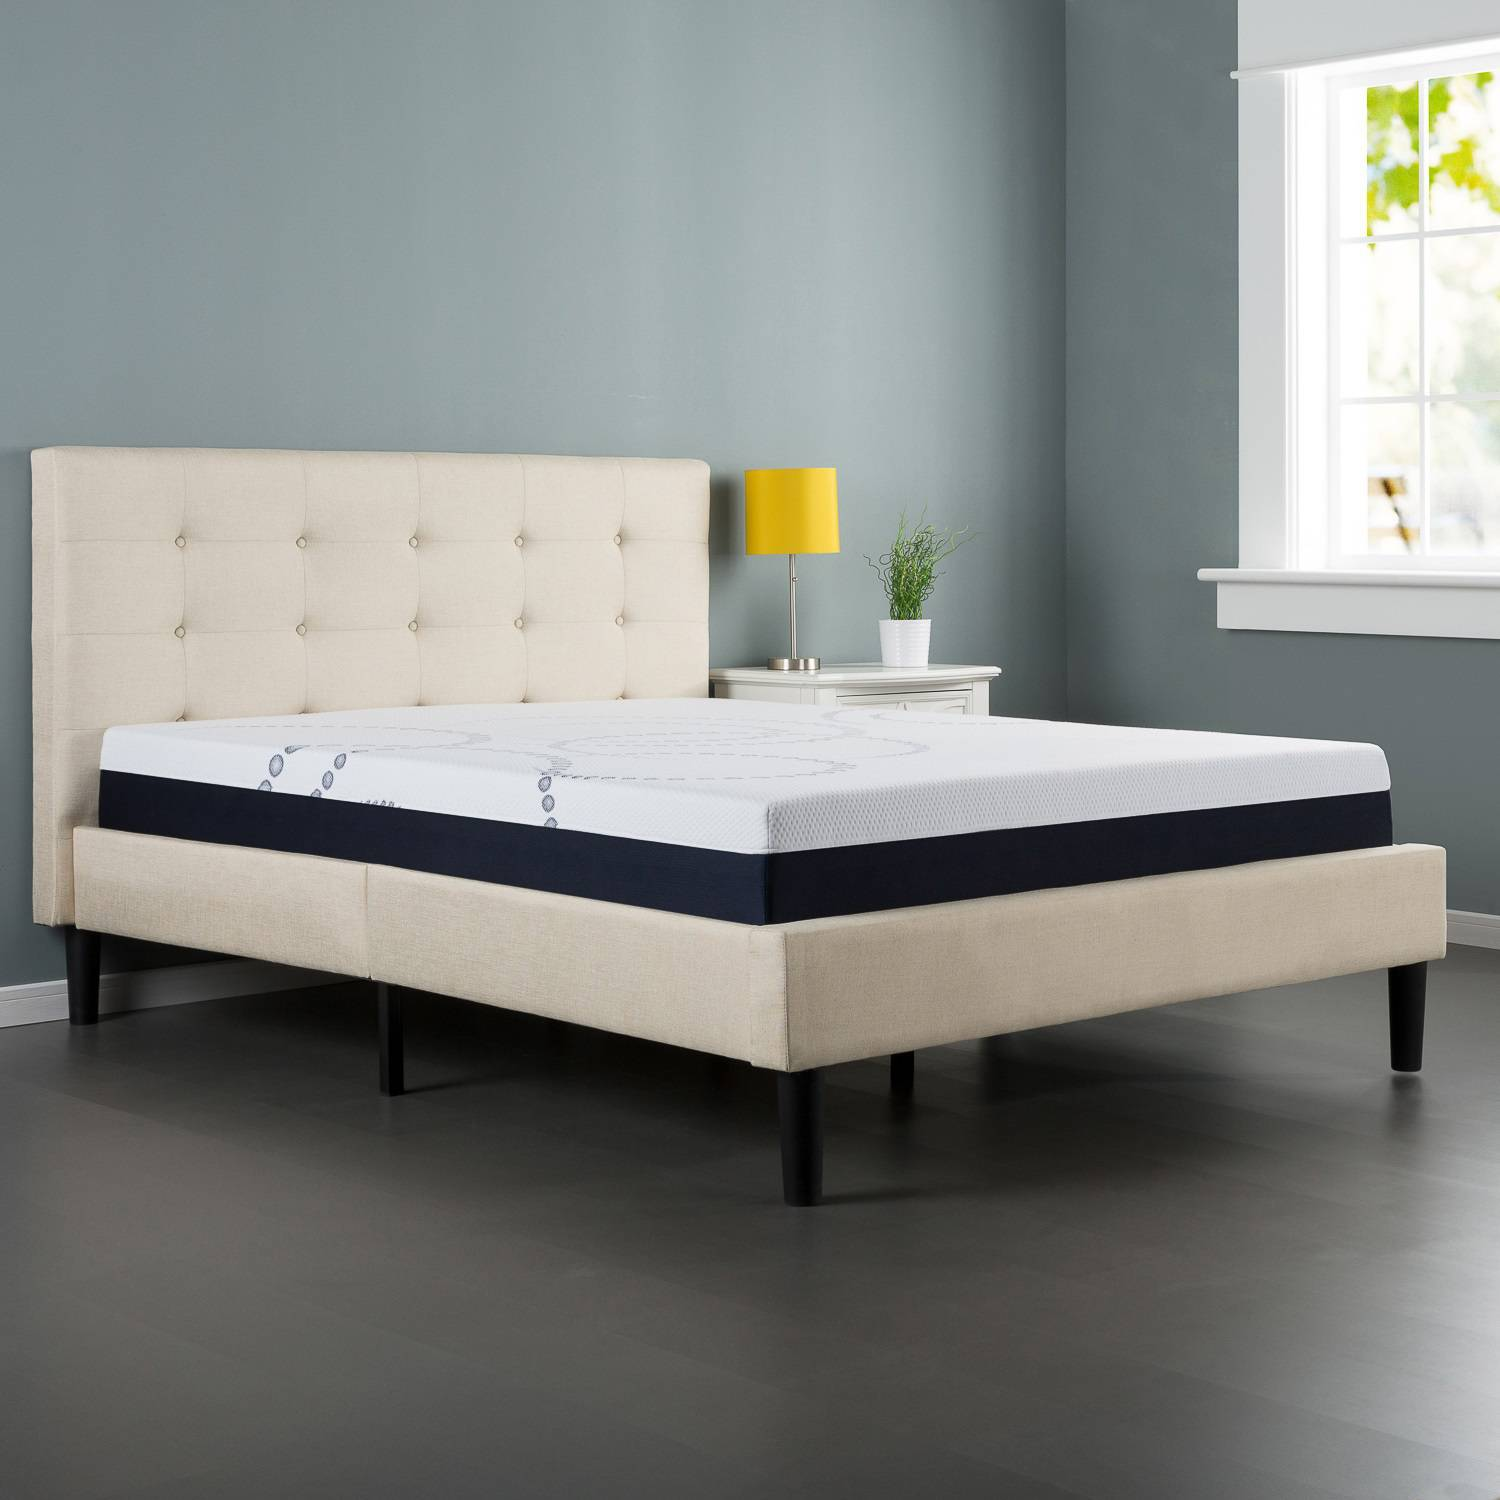 White Platform Bed Without Headboard Zinus Ibidun Upholstered Button Tufted Platform Bed With Wooden